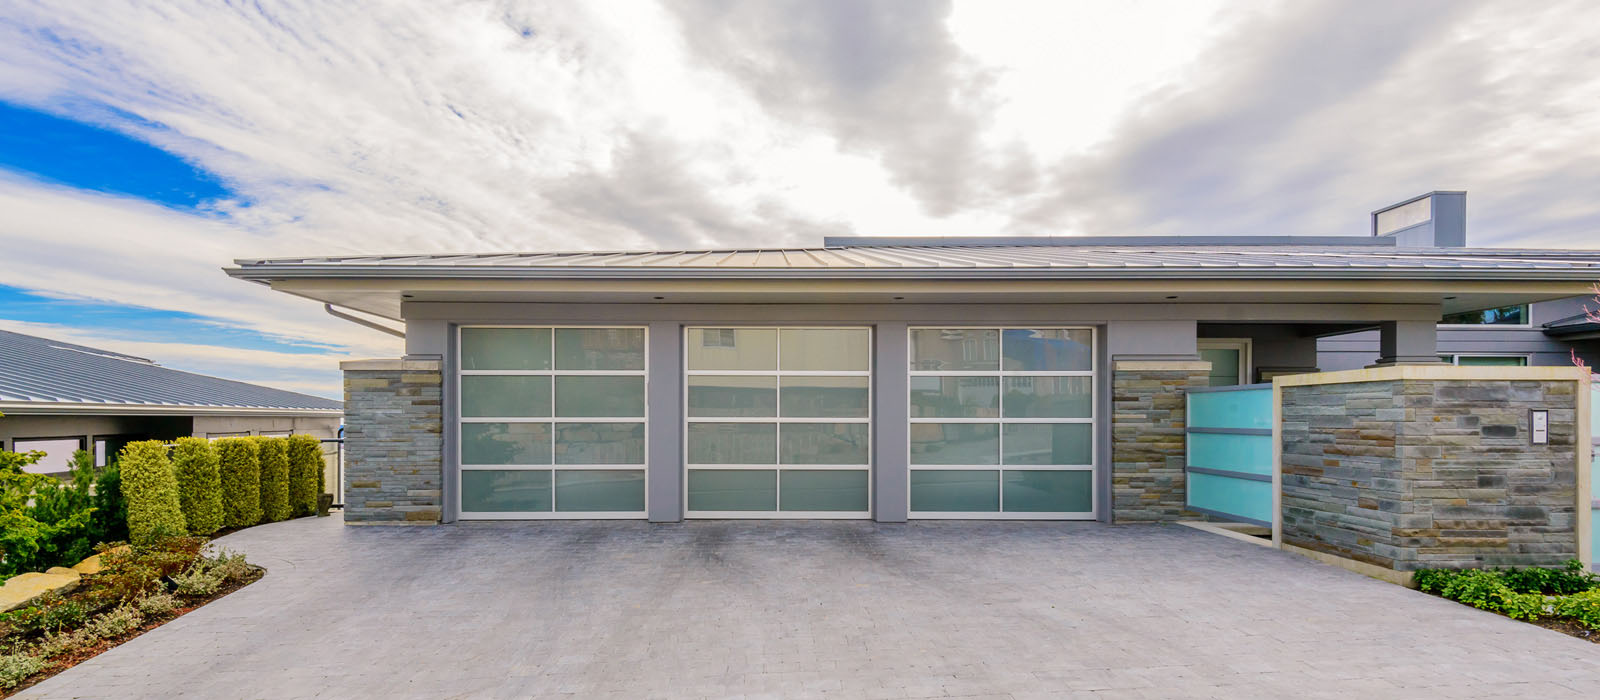 Garage door repair carson city home design ideas and pictures garage door repair carson rubansaba